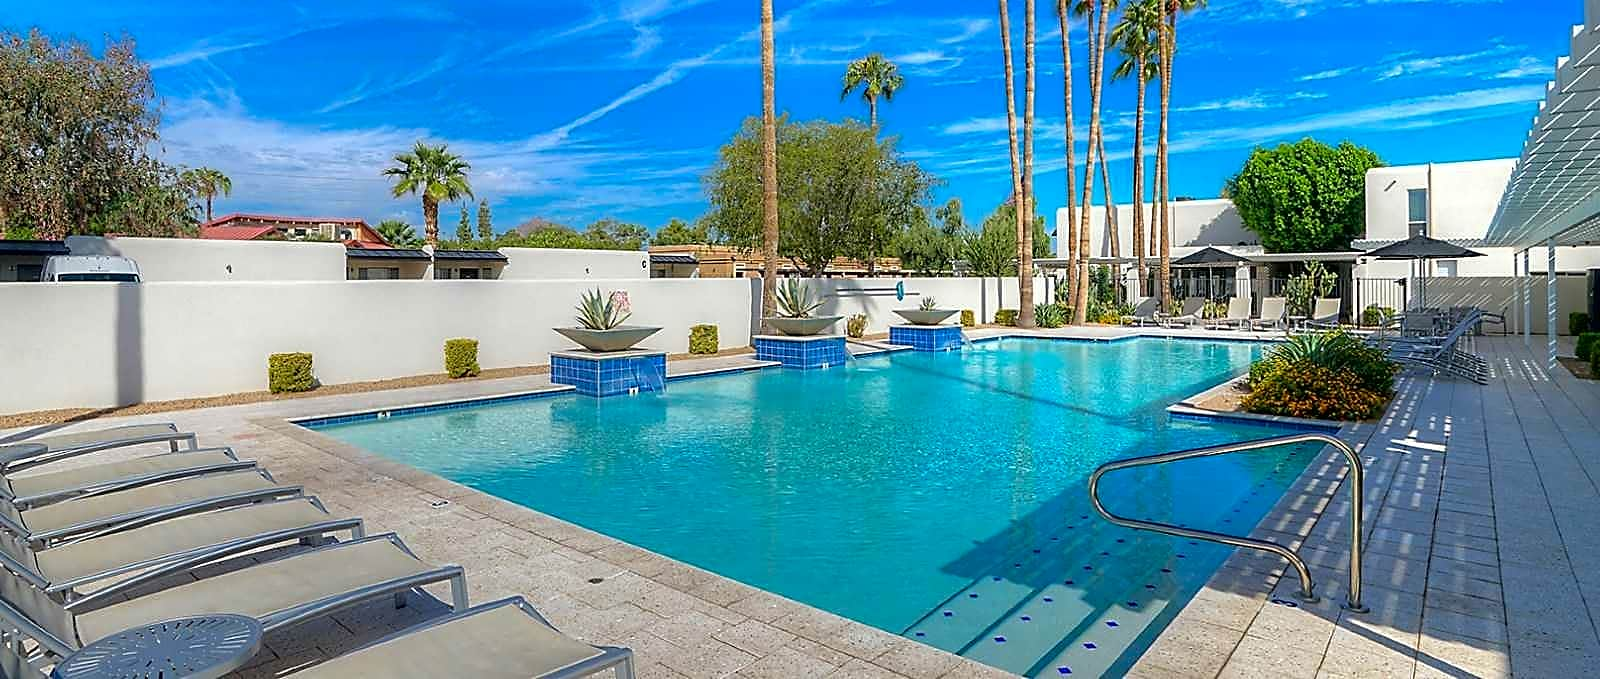 Apartments Near SCC Winfield of Scottsdale for Scottsdale Community College Students in Scottsdale, AZ